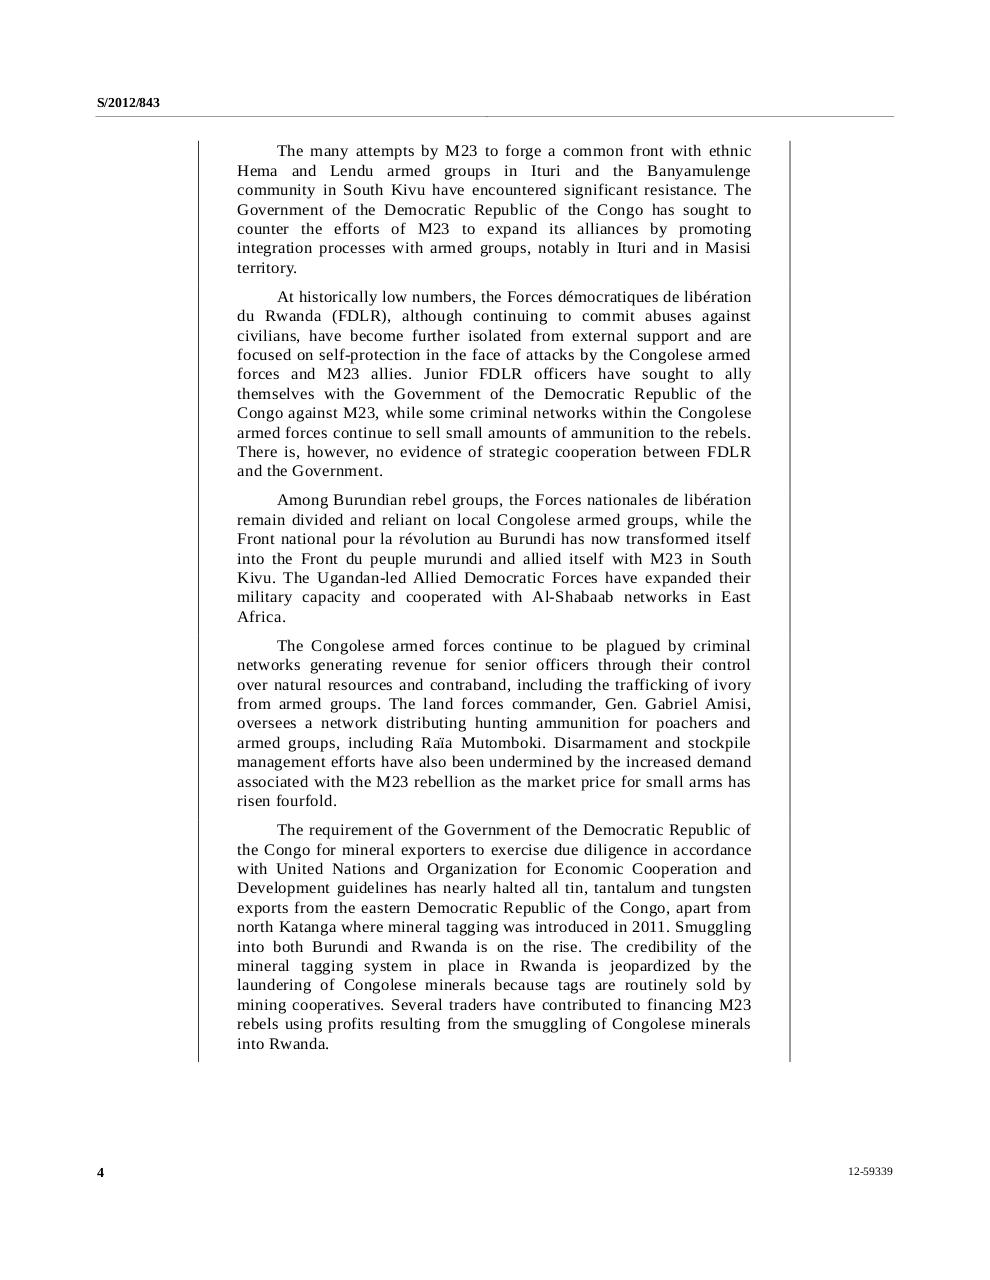 Rapport final du Groupe d'experts sur la République démocratique du Congo 15 novembre 2012  EN.pdf - page 4/204